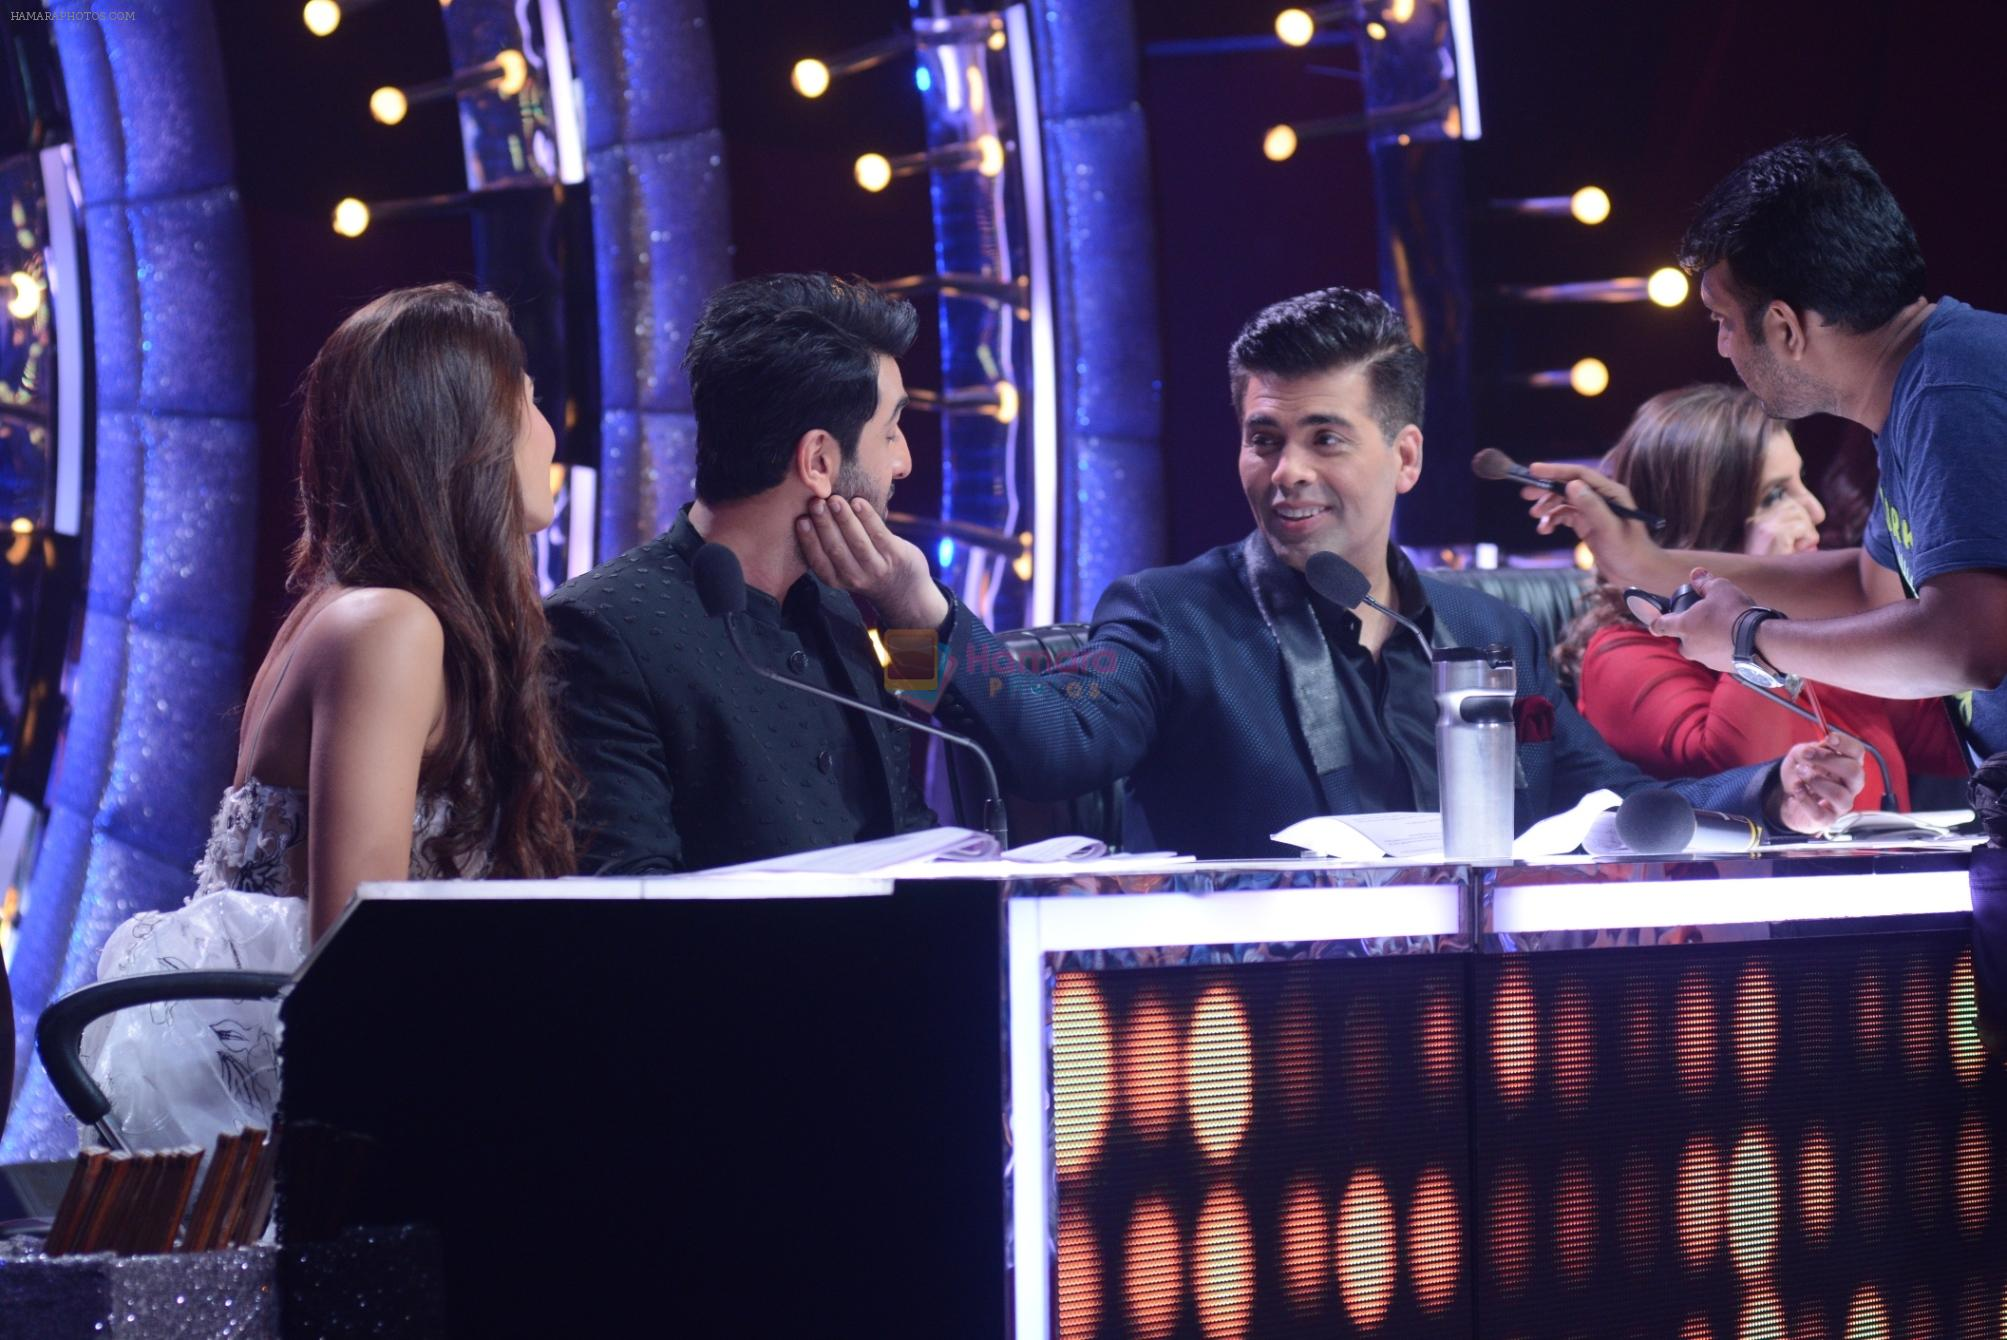 Ranbir Kapoor on the sets of Jhalak Dikhhla Jaa for the promotion of his upcoming movie Ae Dil Hai Mushkil on 17th Oct 2016